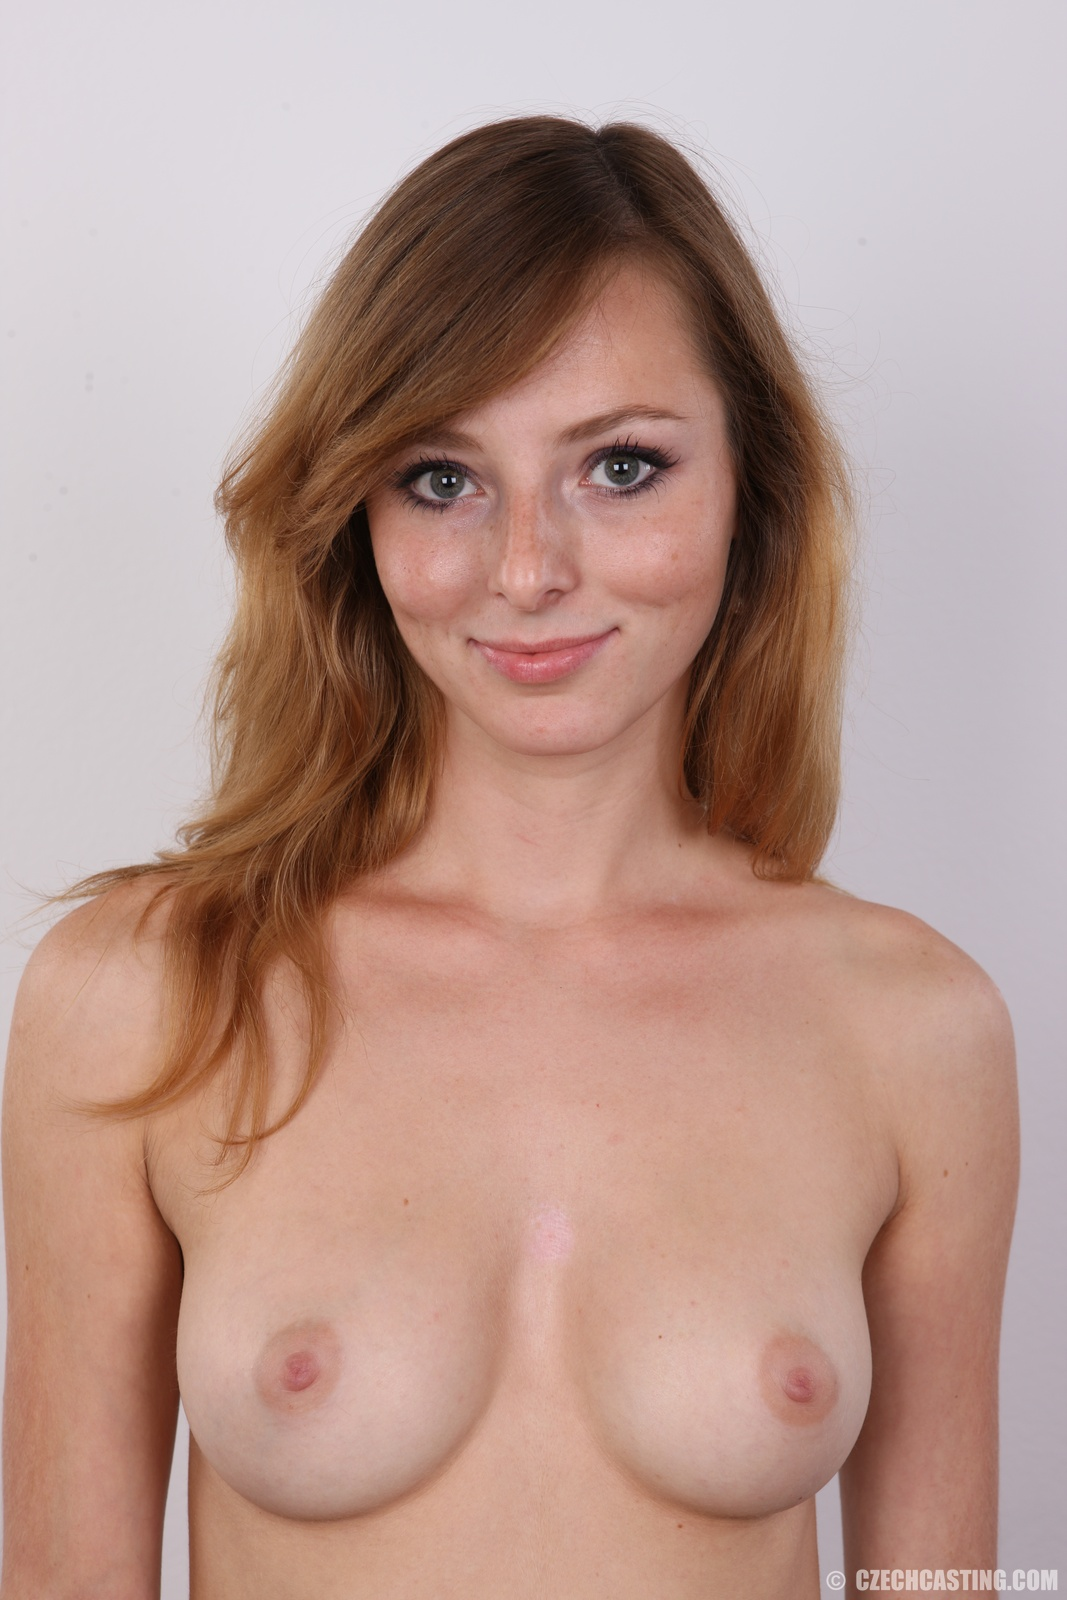 19yo skinny chick shows her body at the casting 3